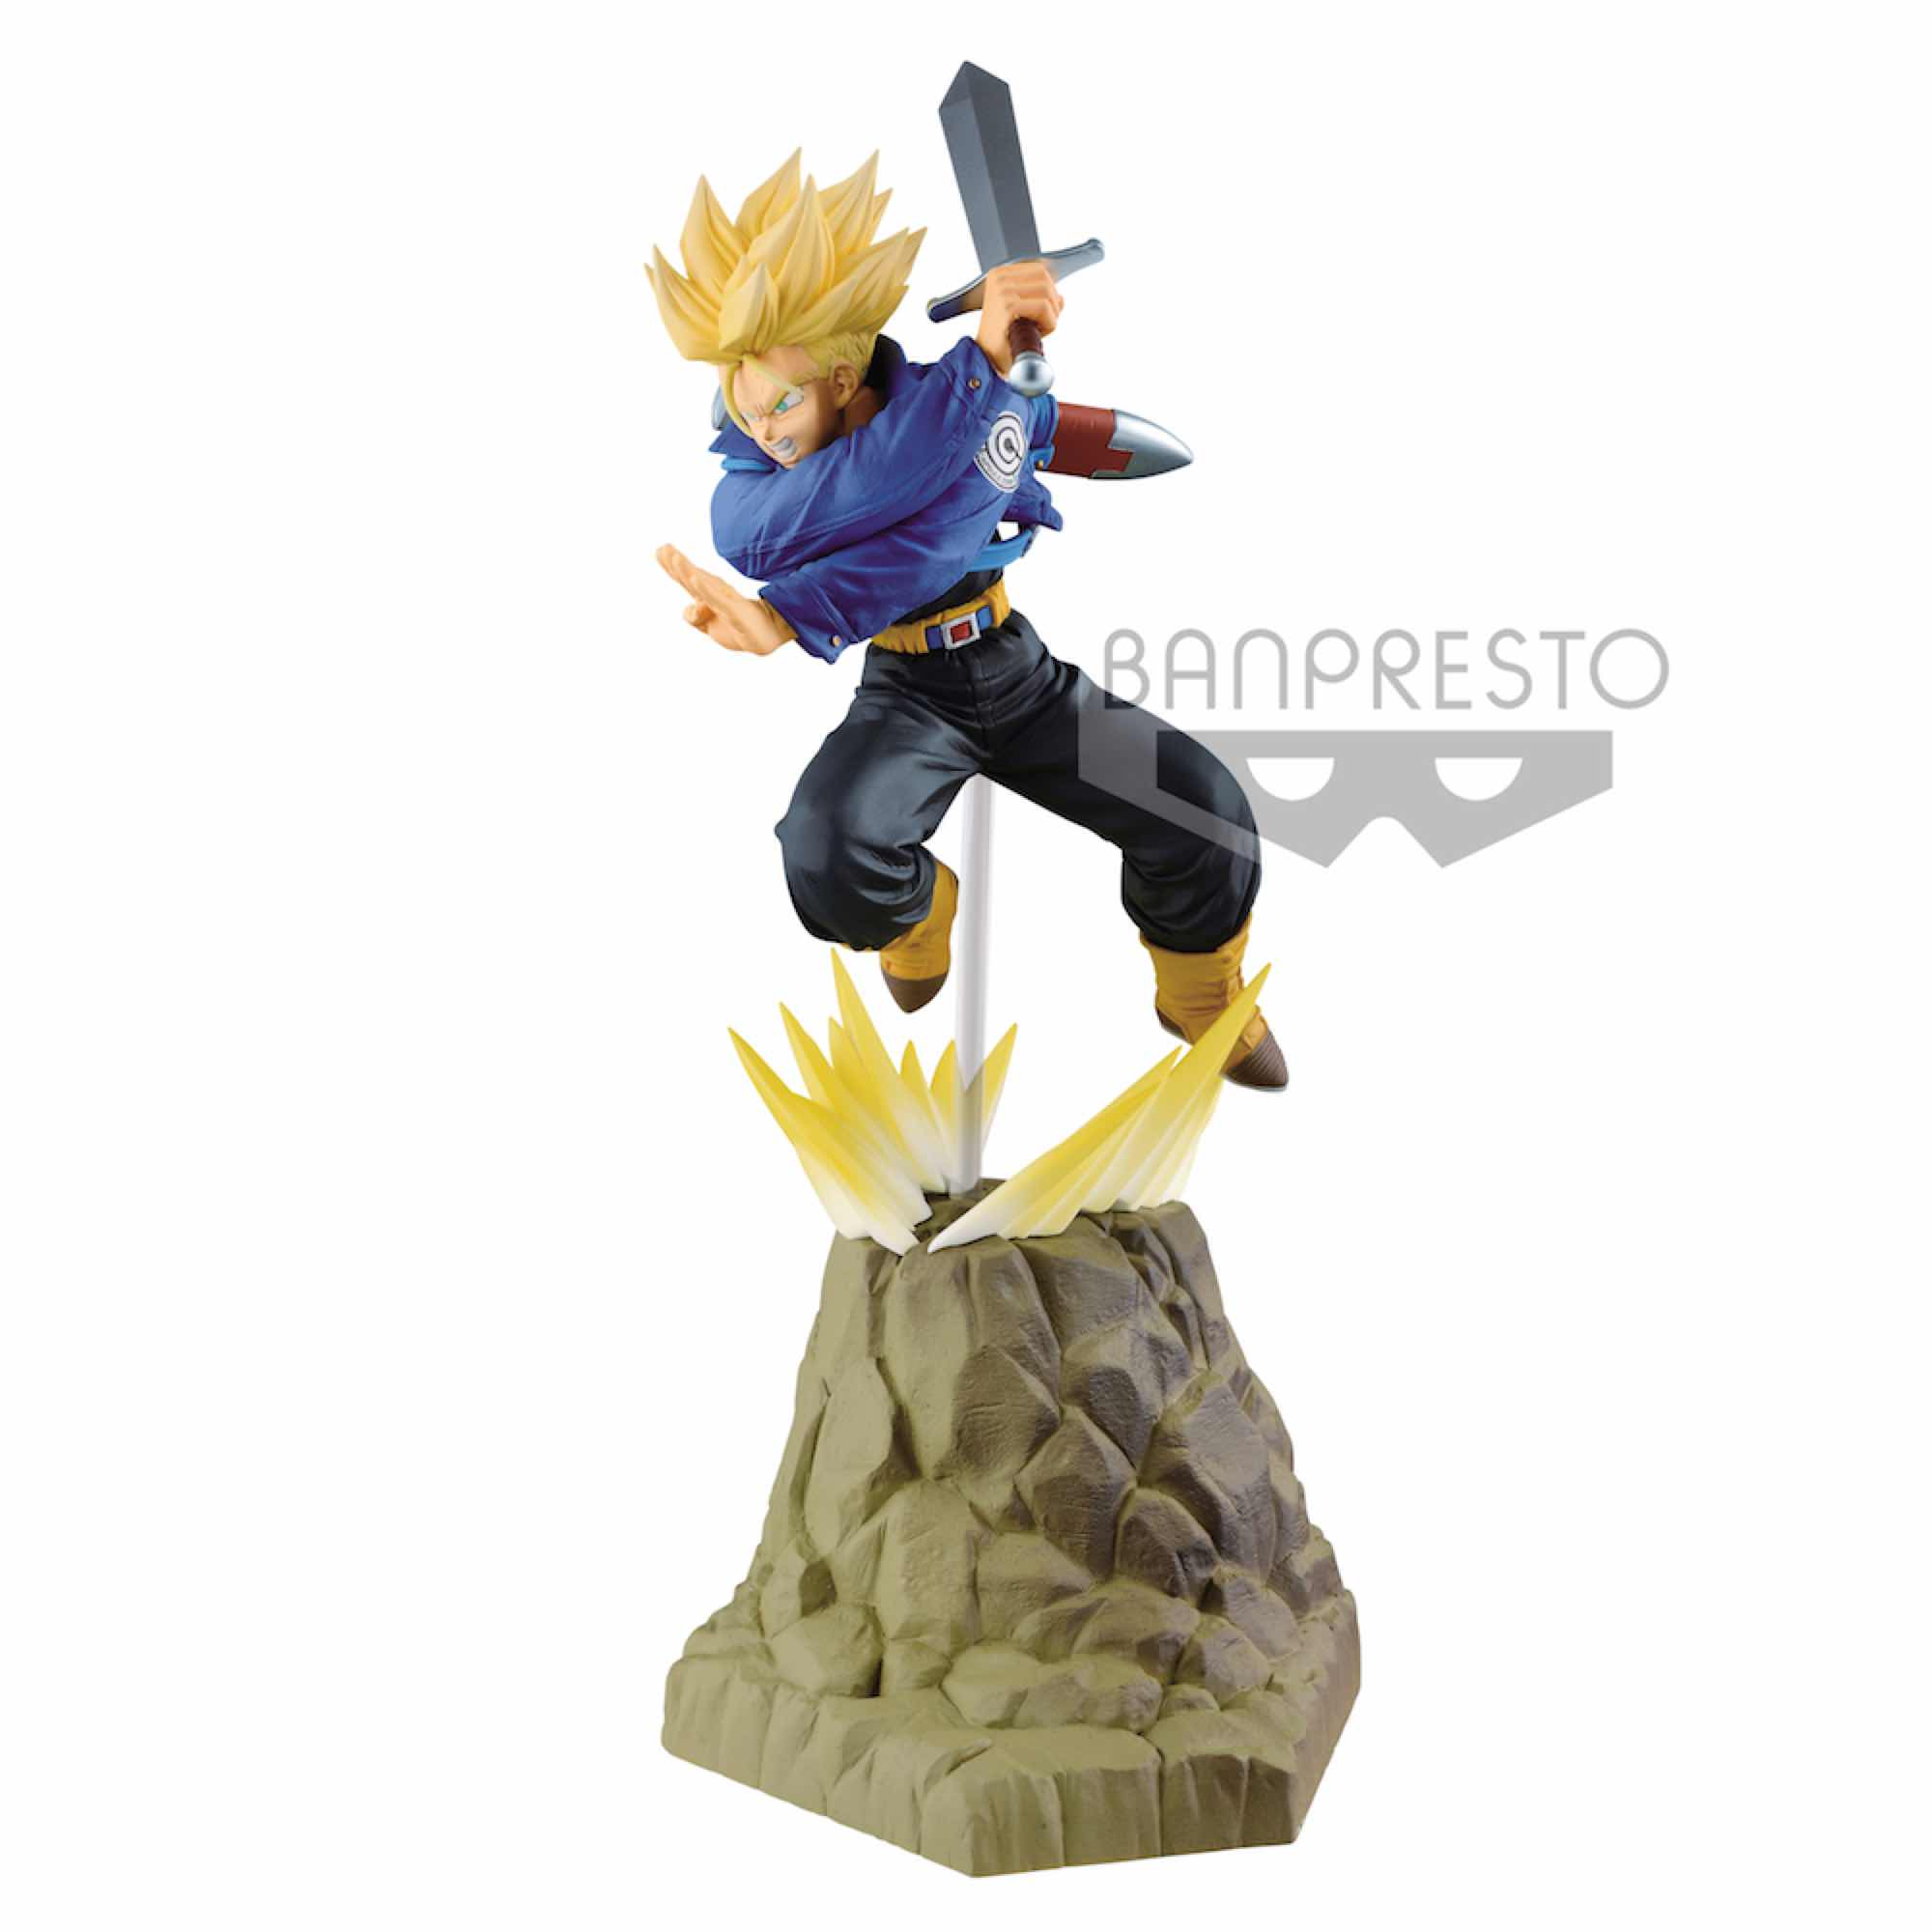 TRUNKS FIGURA 15 CM DRAGON BALL Z ABSOLUTE PERFECTION